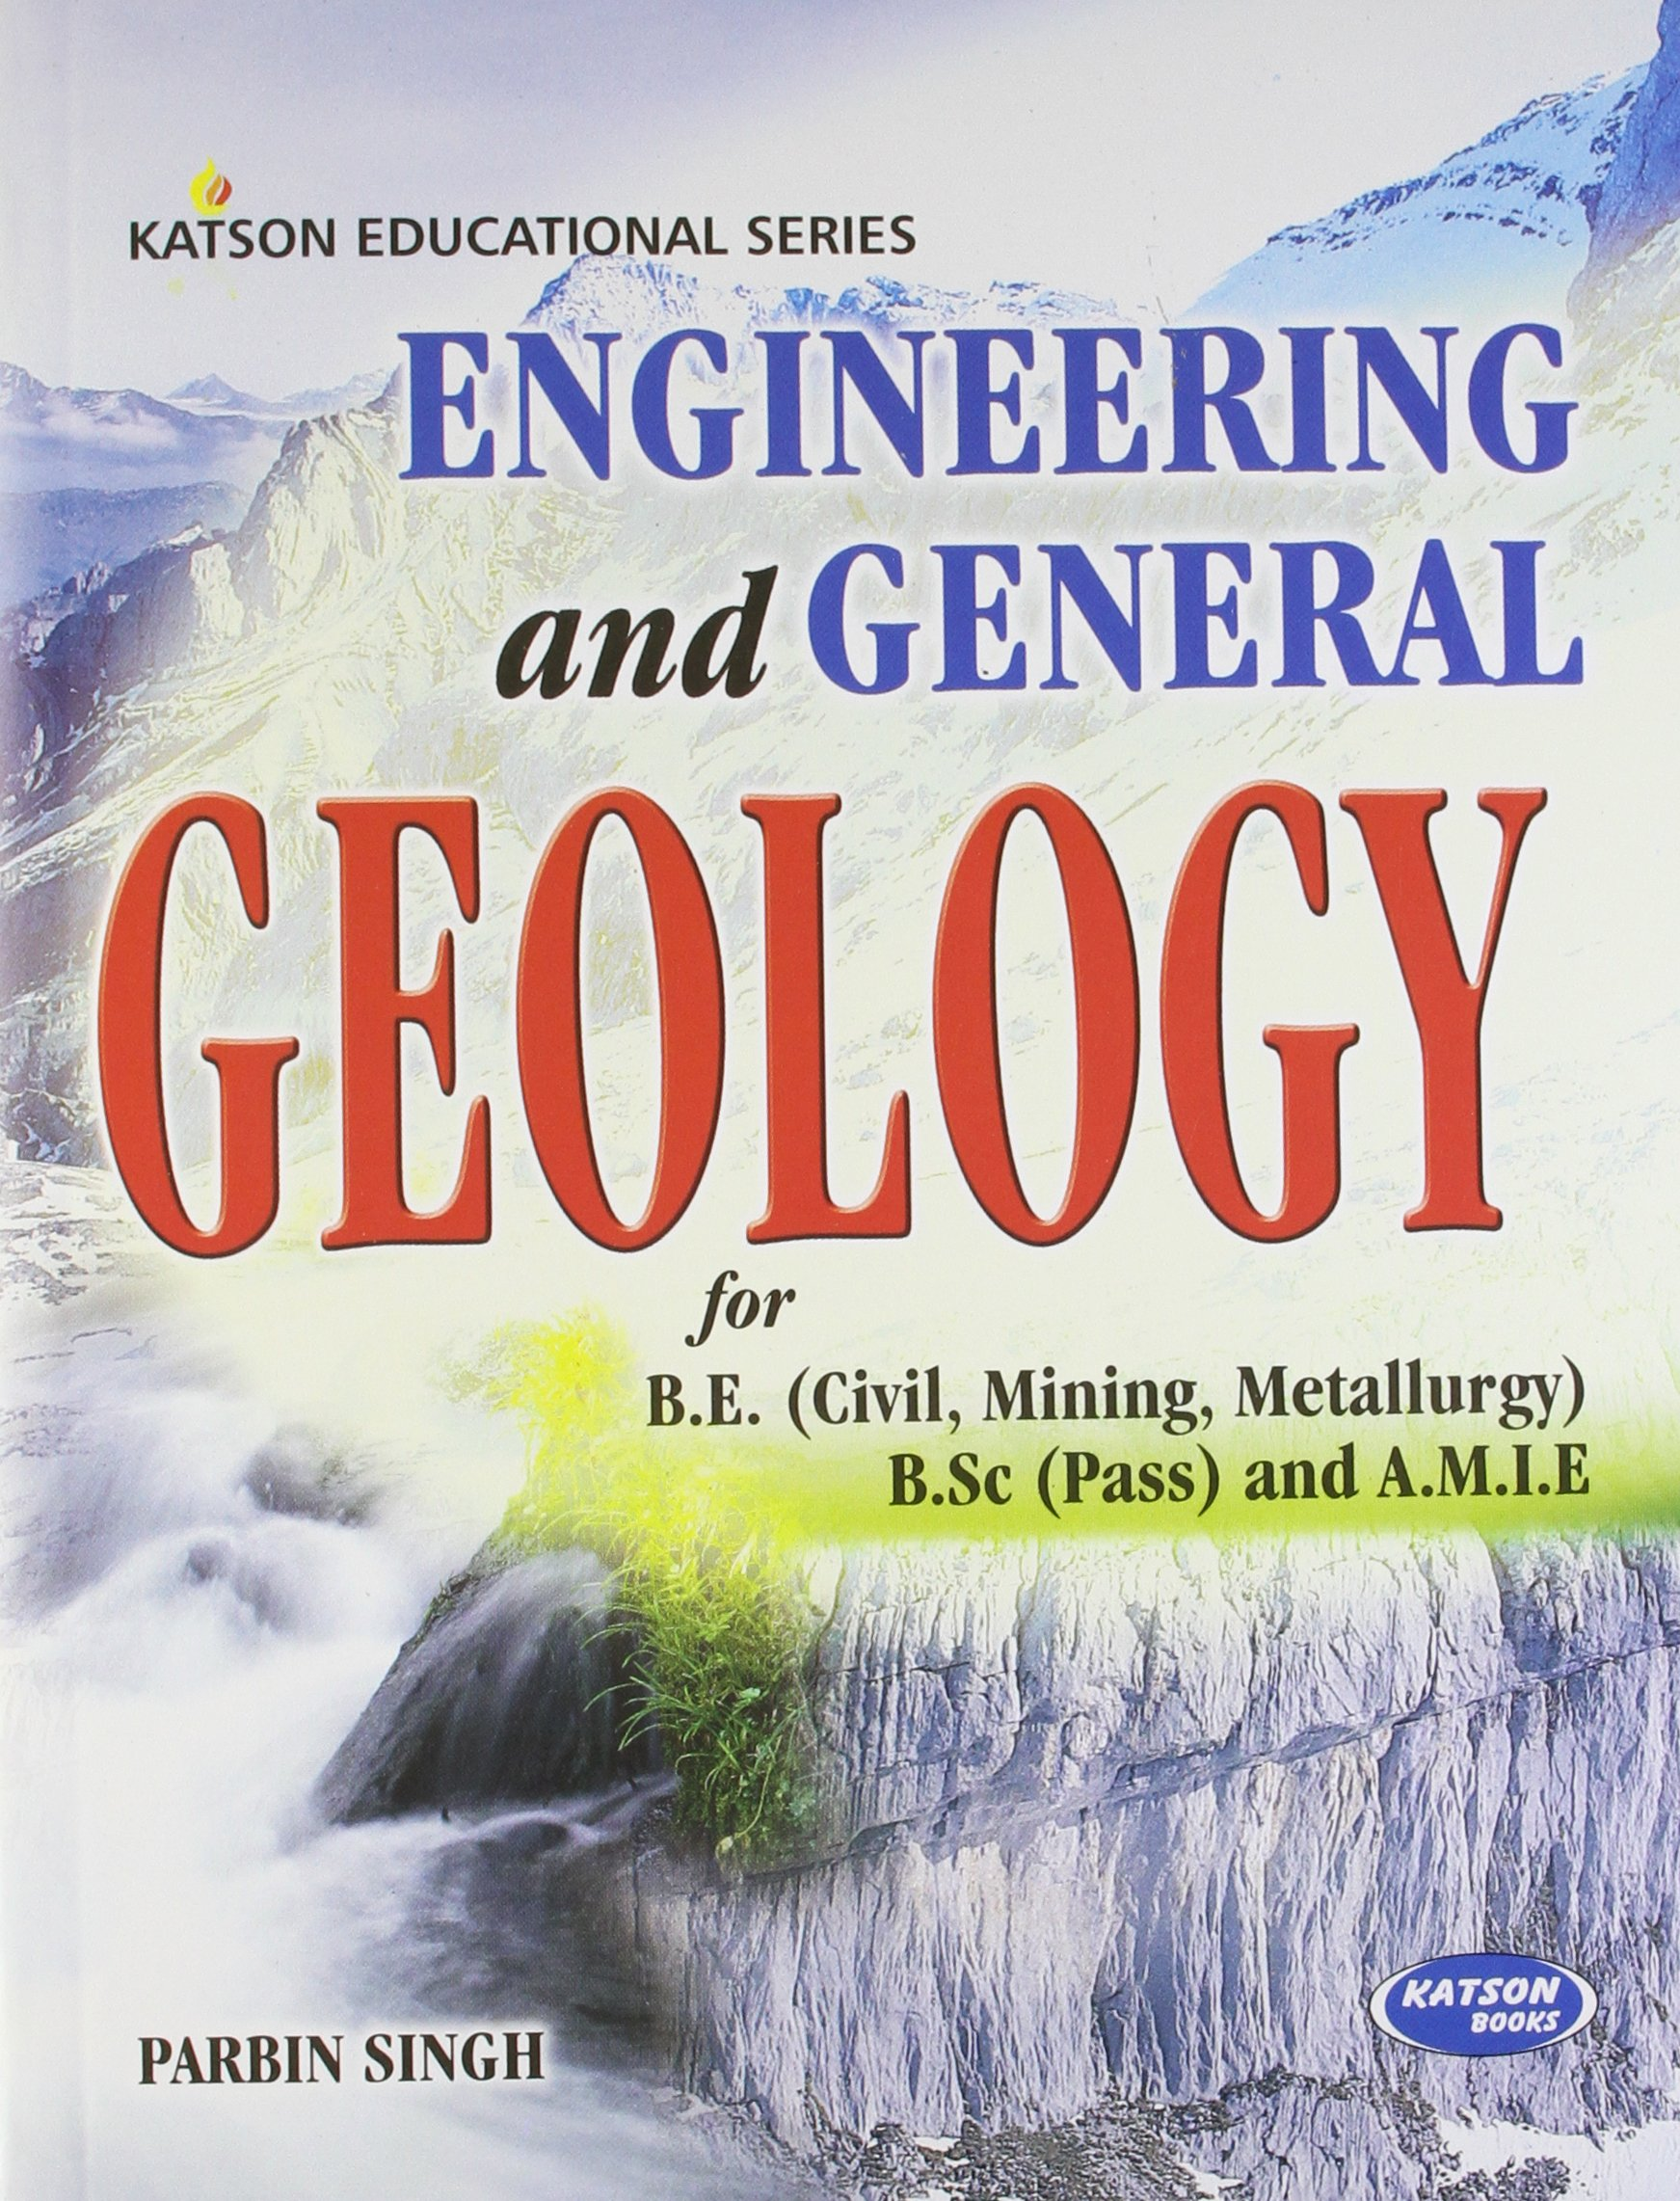 engineering and general geology by parbin singh